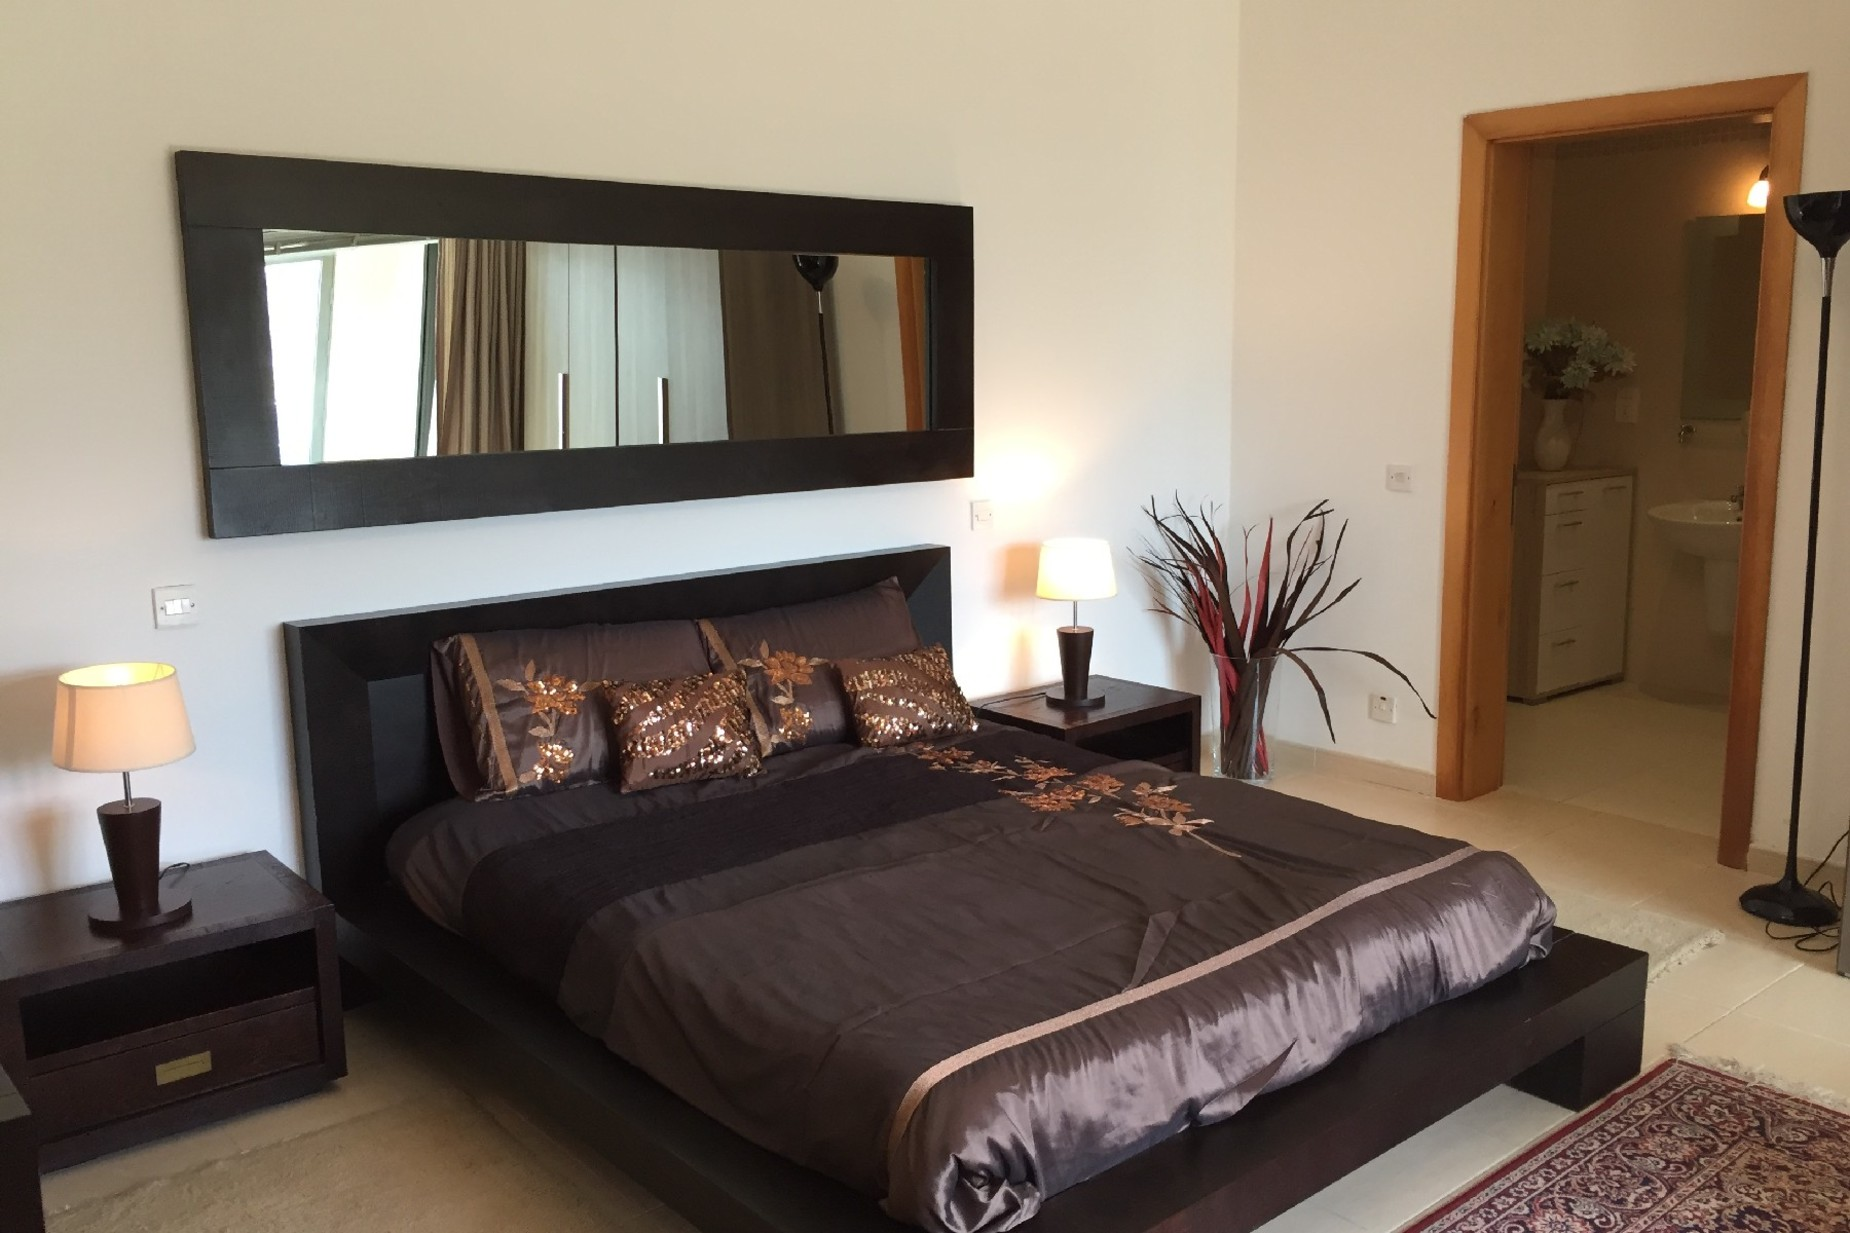 3 bed Apartment For Rent in Mellieha, Mellieha - thumb 9